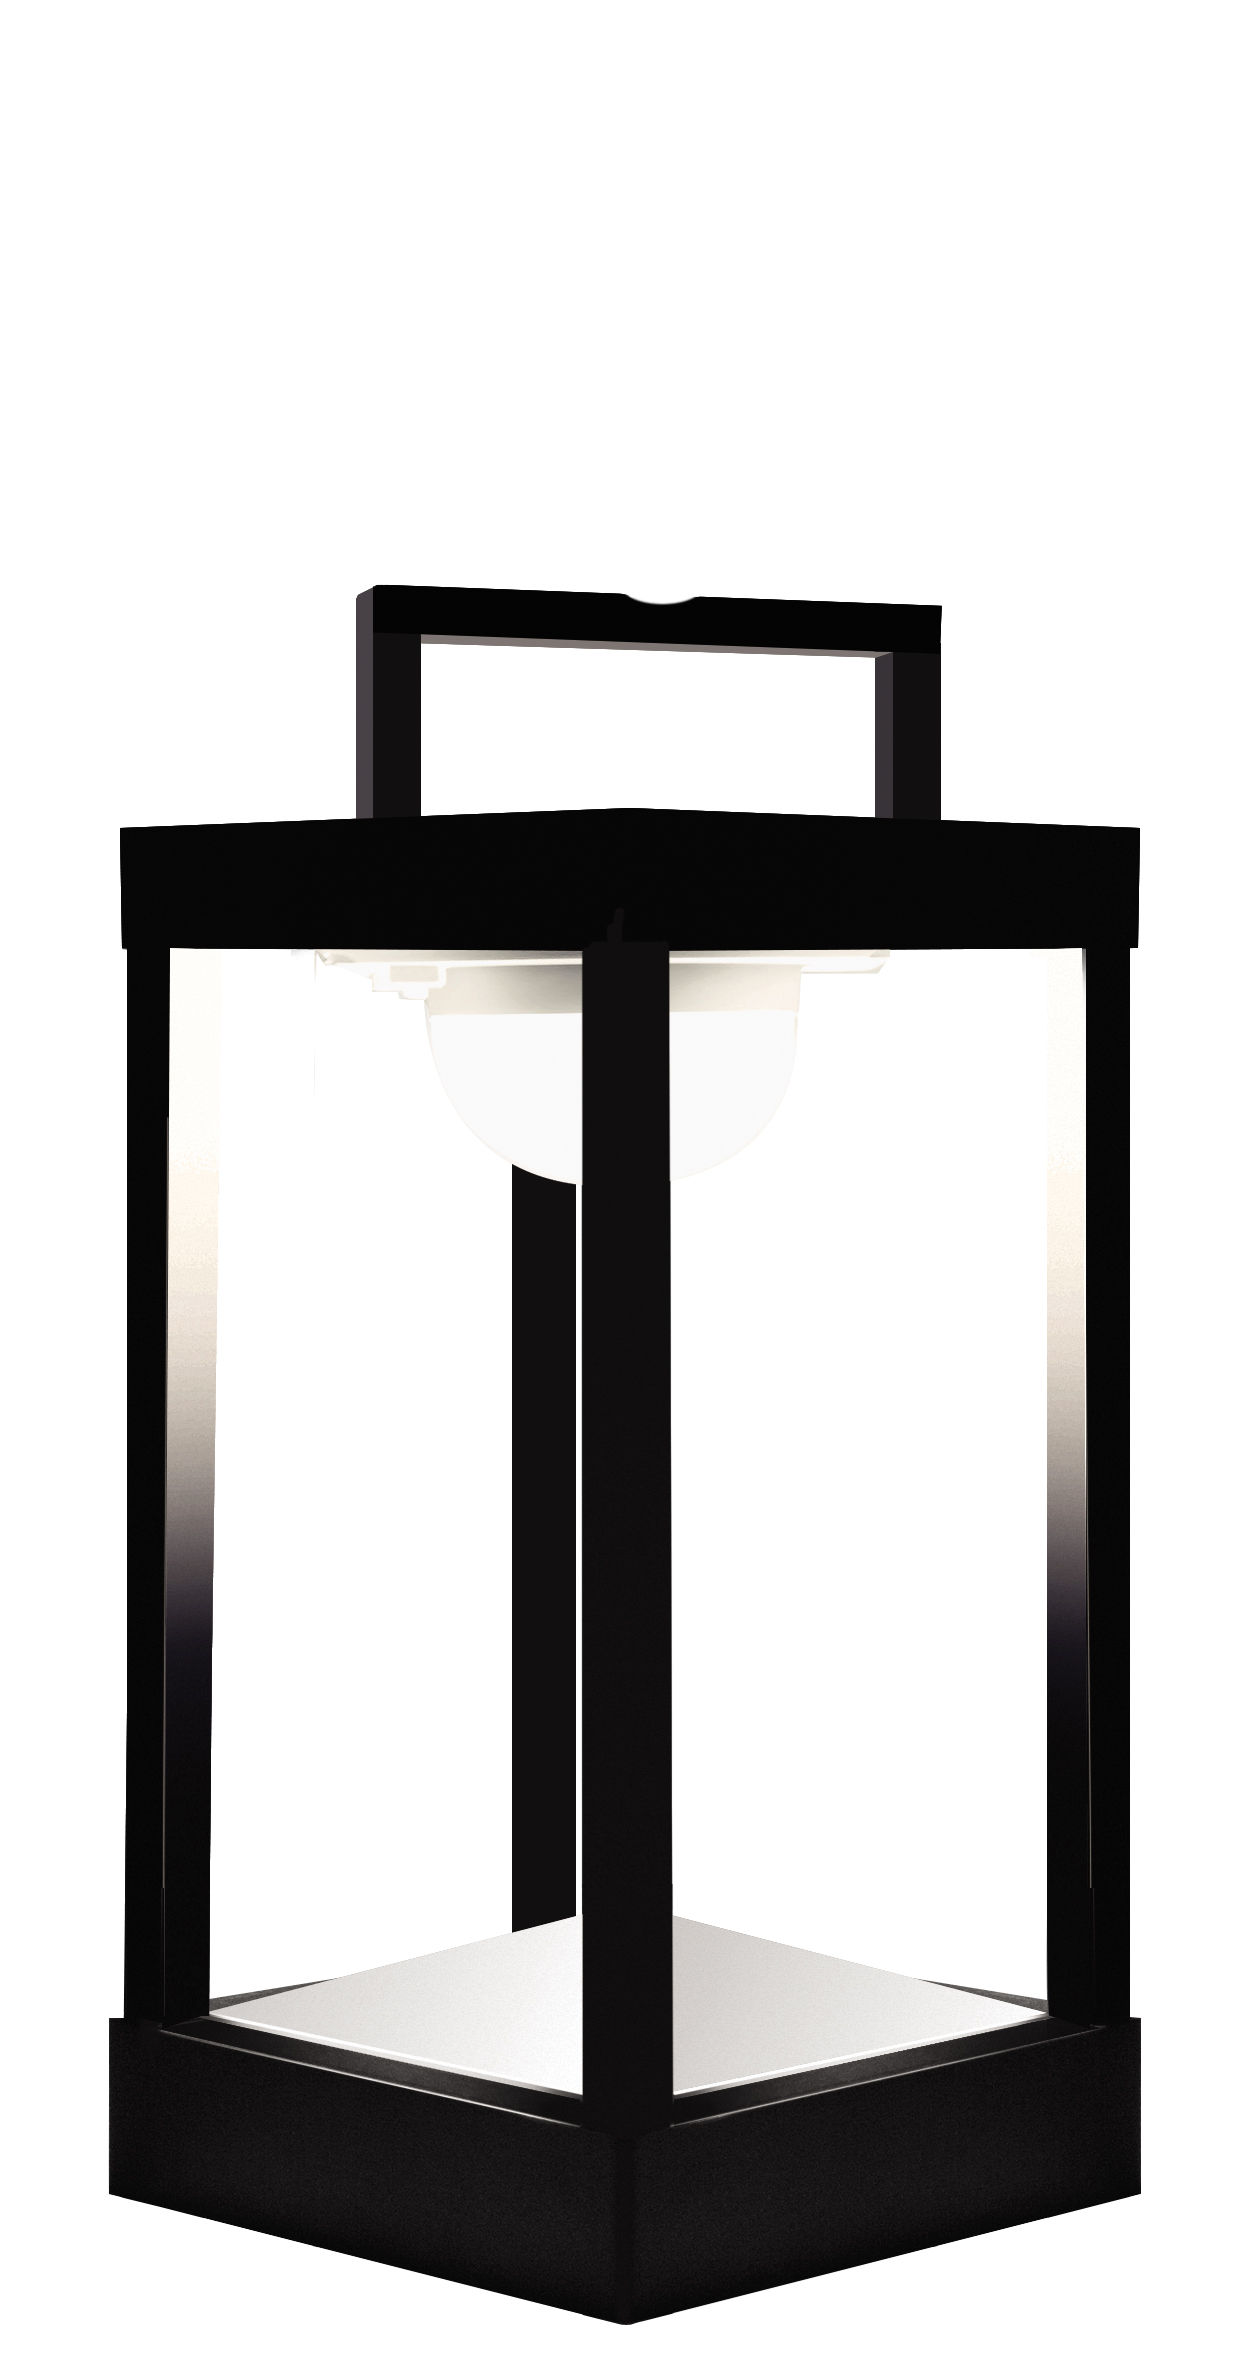 la lampe parc s solar lamp led wireless h 30 cm. Black Bedroom Furniture Sets. Home Design Ideas